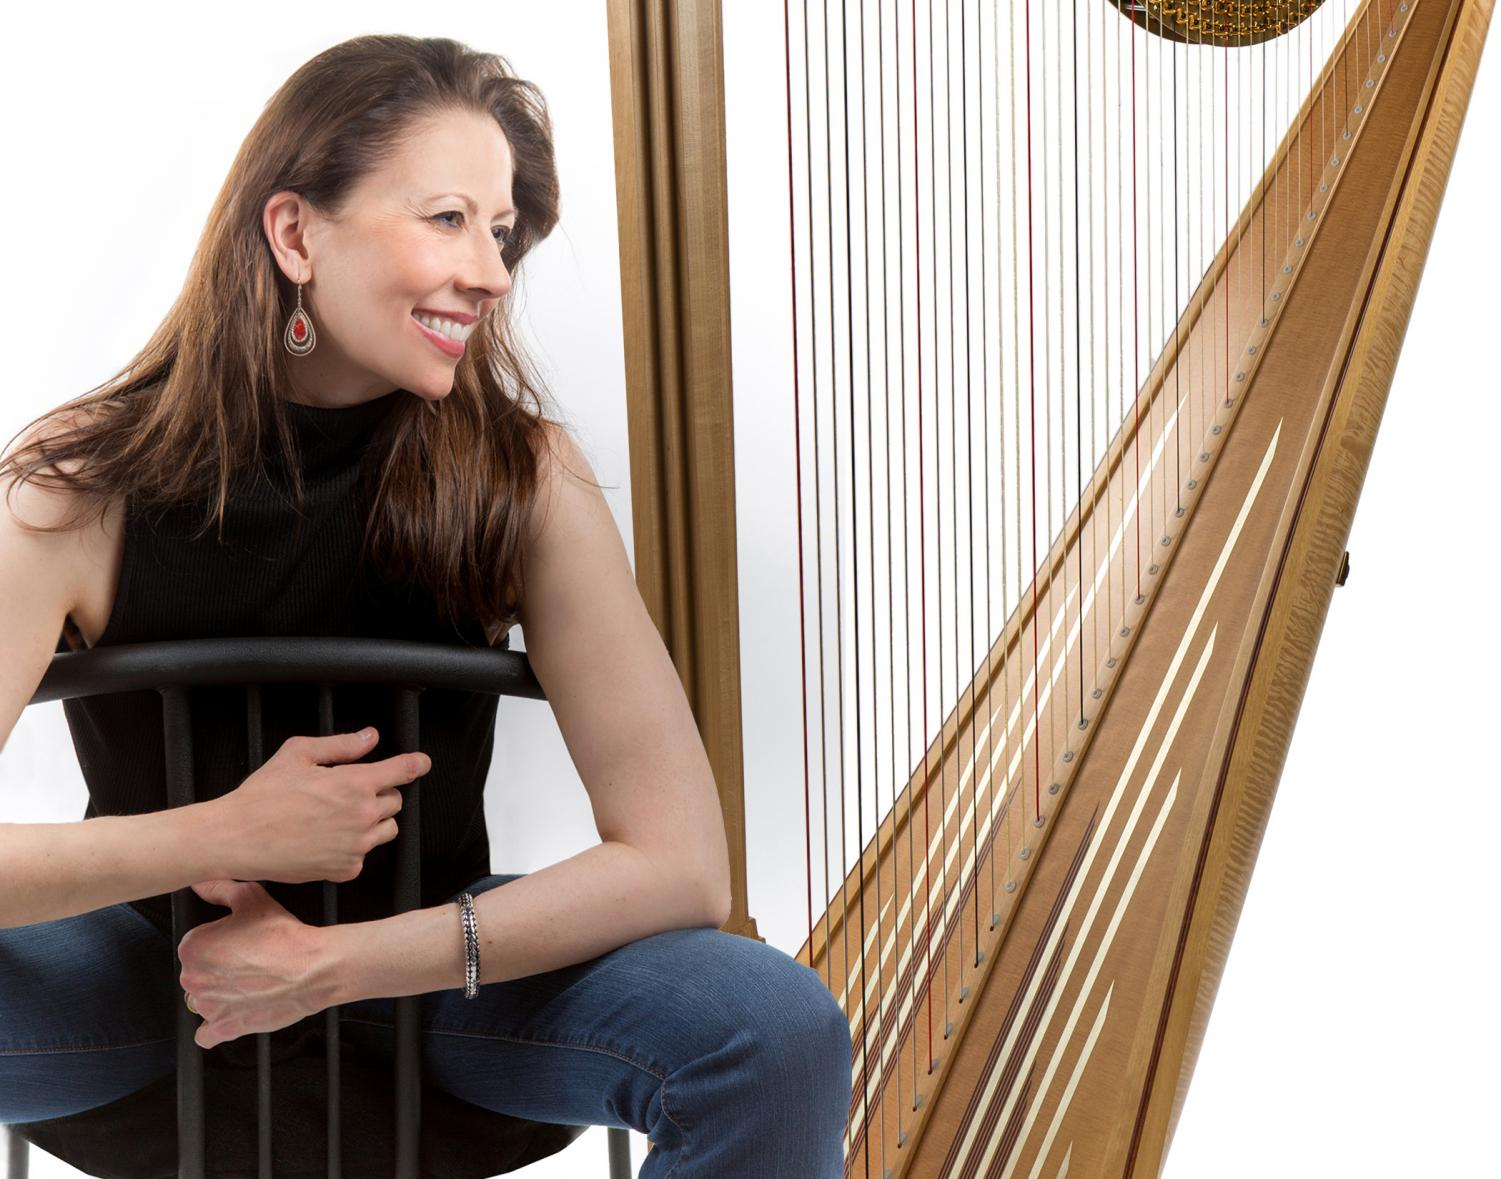 """Last week, Assistant Professor of Harp Yolanda Kondonassis was nominated for a Grammy Award in the Best Classical Instrumental Solo category for her world premiere recording of Jennifer Higdon's """"Harp Concerto."""" Kondonassis — no stranger to accolades — is considered one of the best solo harpists in the world. This is her second Grammy nomination, and she was also awarded the 2011 Cleveland Arts Prize. In addition to her work in music, Kondonassis is also a driven climate activist. She has donated her royalties from several projects to environmental nonprofit organizations, and she is the founder and director of Earth at Heart, an organization that encourages climate activism through an artistic lens. She also authored an environmentalist children's book, Our House is Round: A Kid's Book About Why Protecting Our Earth Matters. Kondonassis' music career started when she picked her instrument as a child. """"I started playing the harp at the age of nine, and it was actually my mom's idea,"""" Kondonassis wrote in an email to the Review. """"I think she thought the angelic qualities of the instrument would rub off on me! I've often said that instead of me becoming more angelic with the harp, I'm afraid that my forty-five years of promoting this instrument have probably made the harp a little less angelic as a result of me."""" Despite Kondonassis' humility, her many talents have made a mark on music history and the environment alike."""